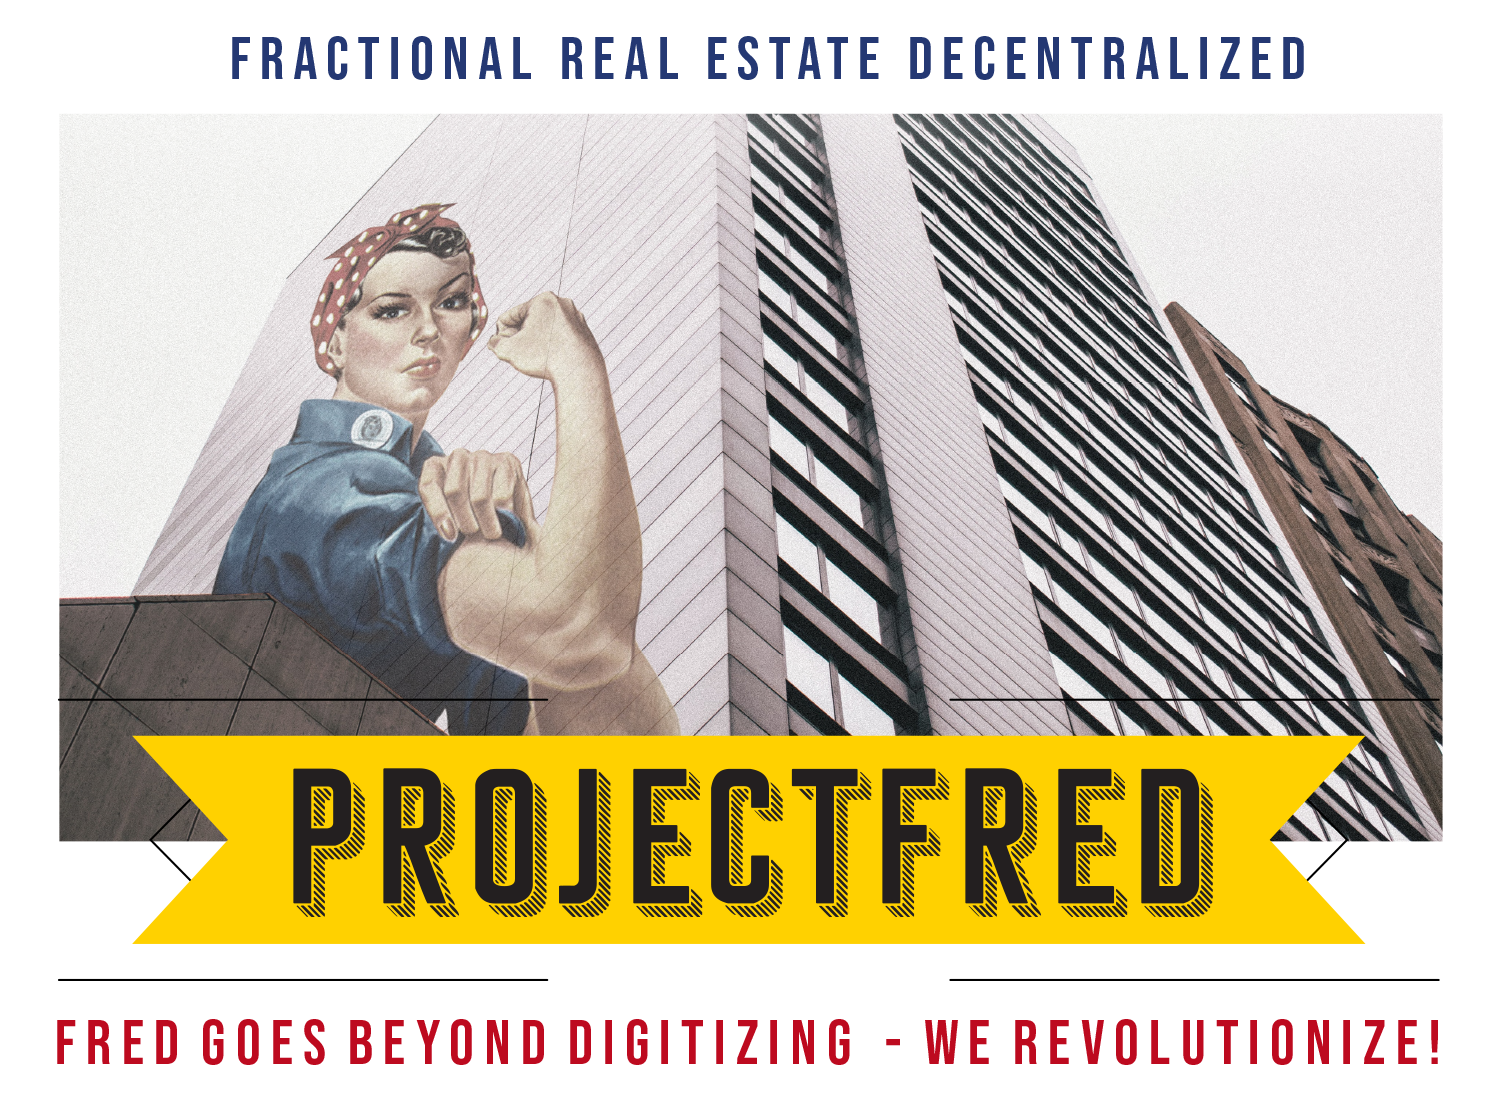 project_fred_commercial_real_estate.png